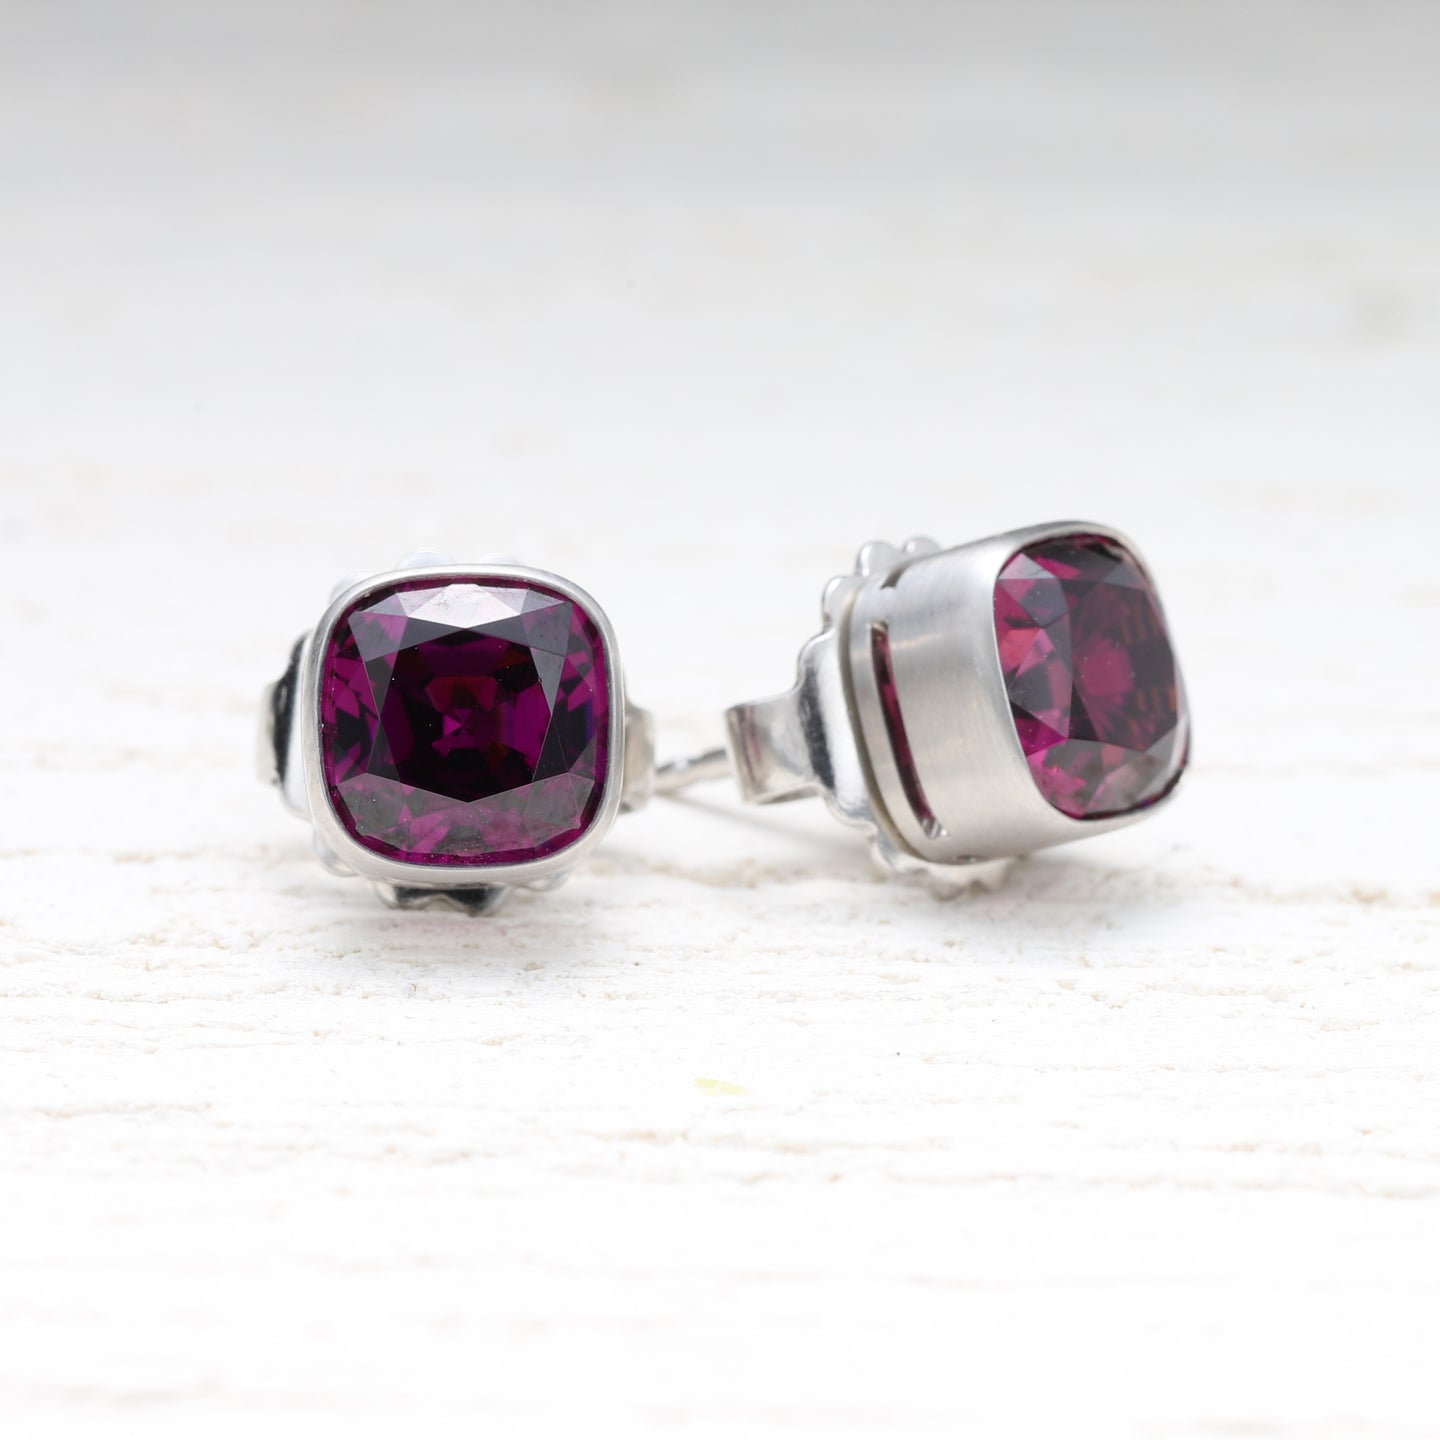 33145 Amaranth Garnet Bezel Stud Earrings